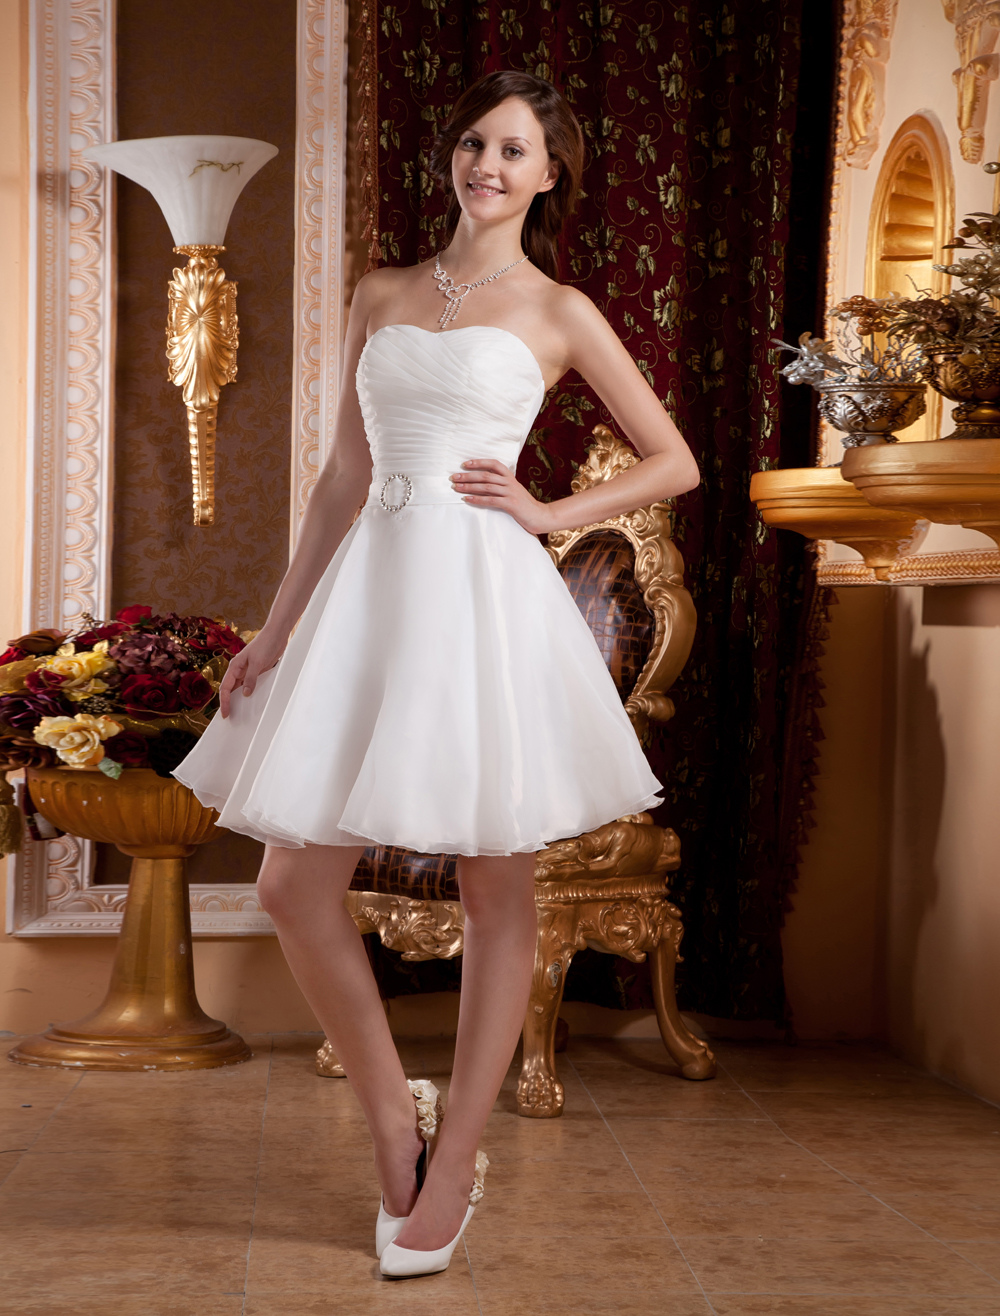 White Sweetheart Rhinestone Organza Homecoming Dress $99.99 AT vintagedancer.com